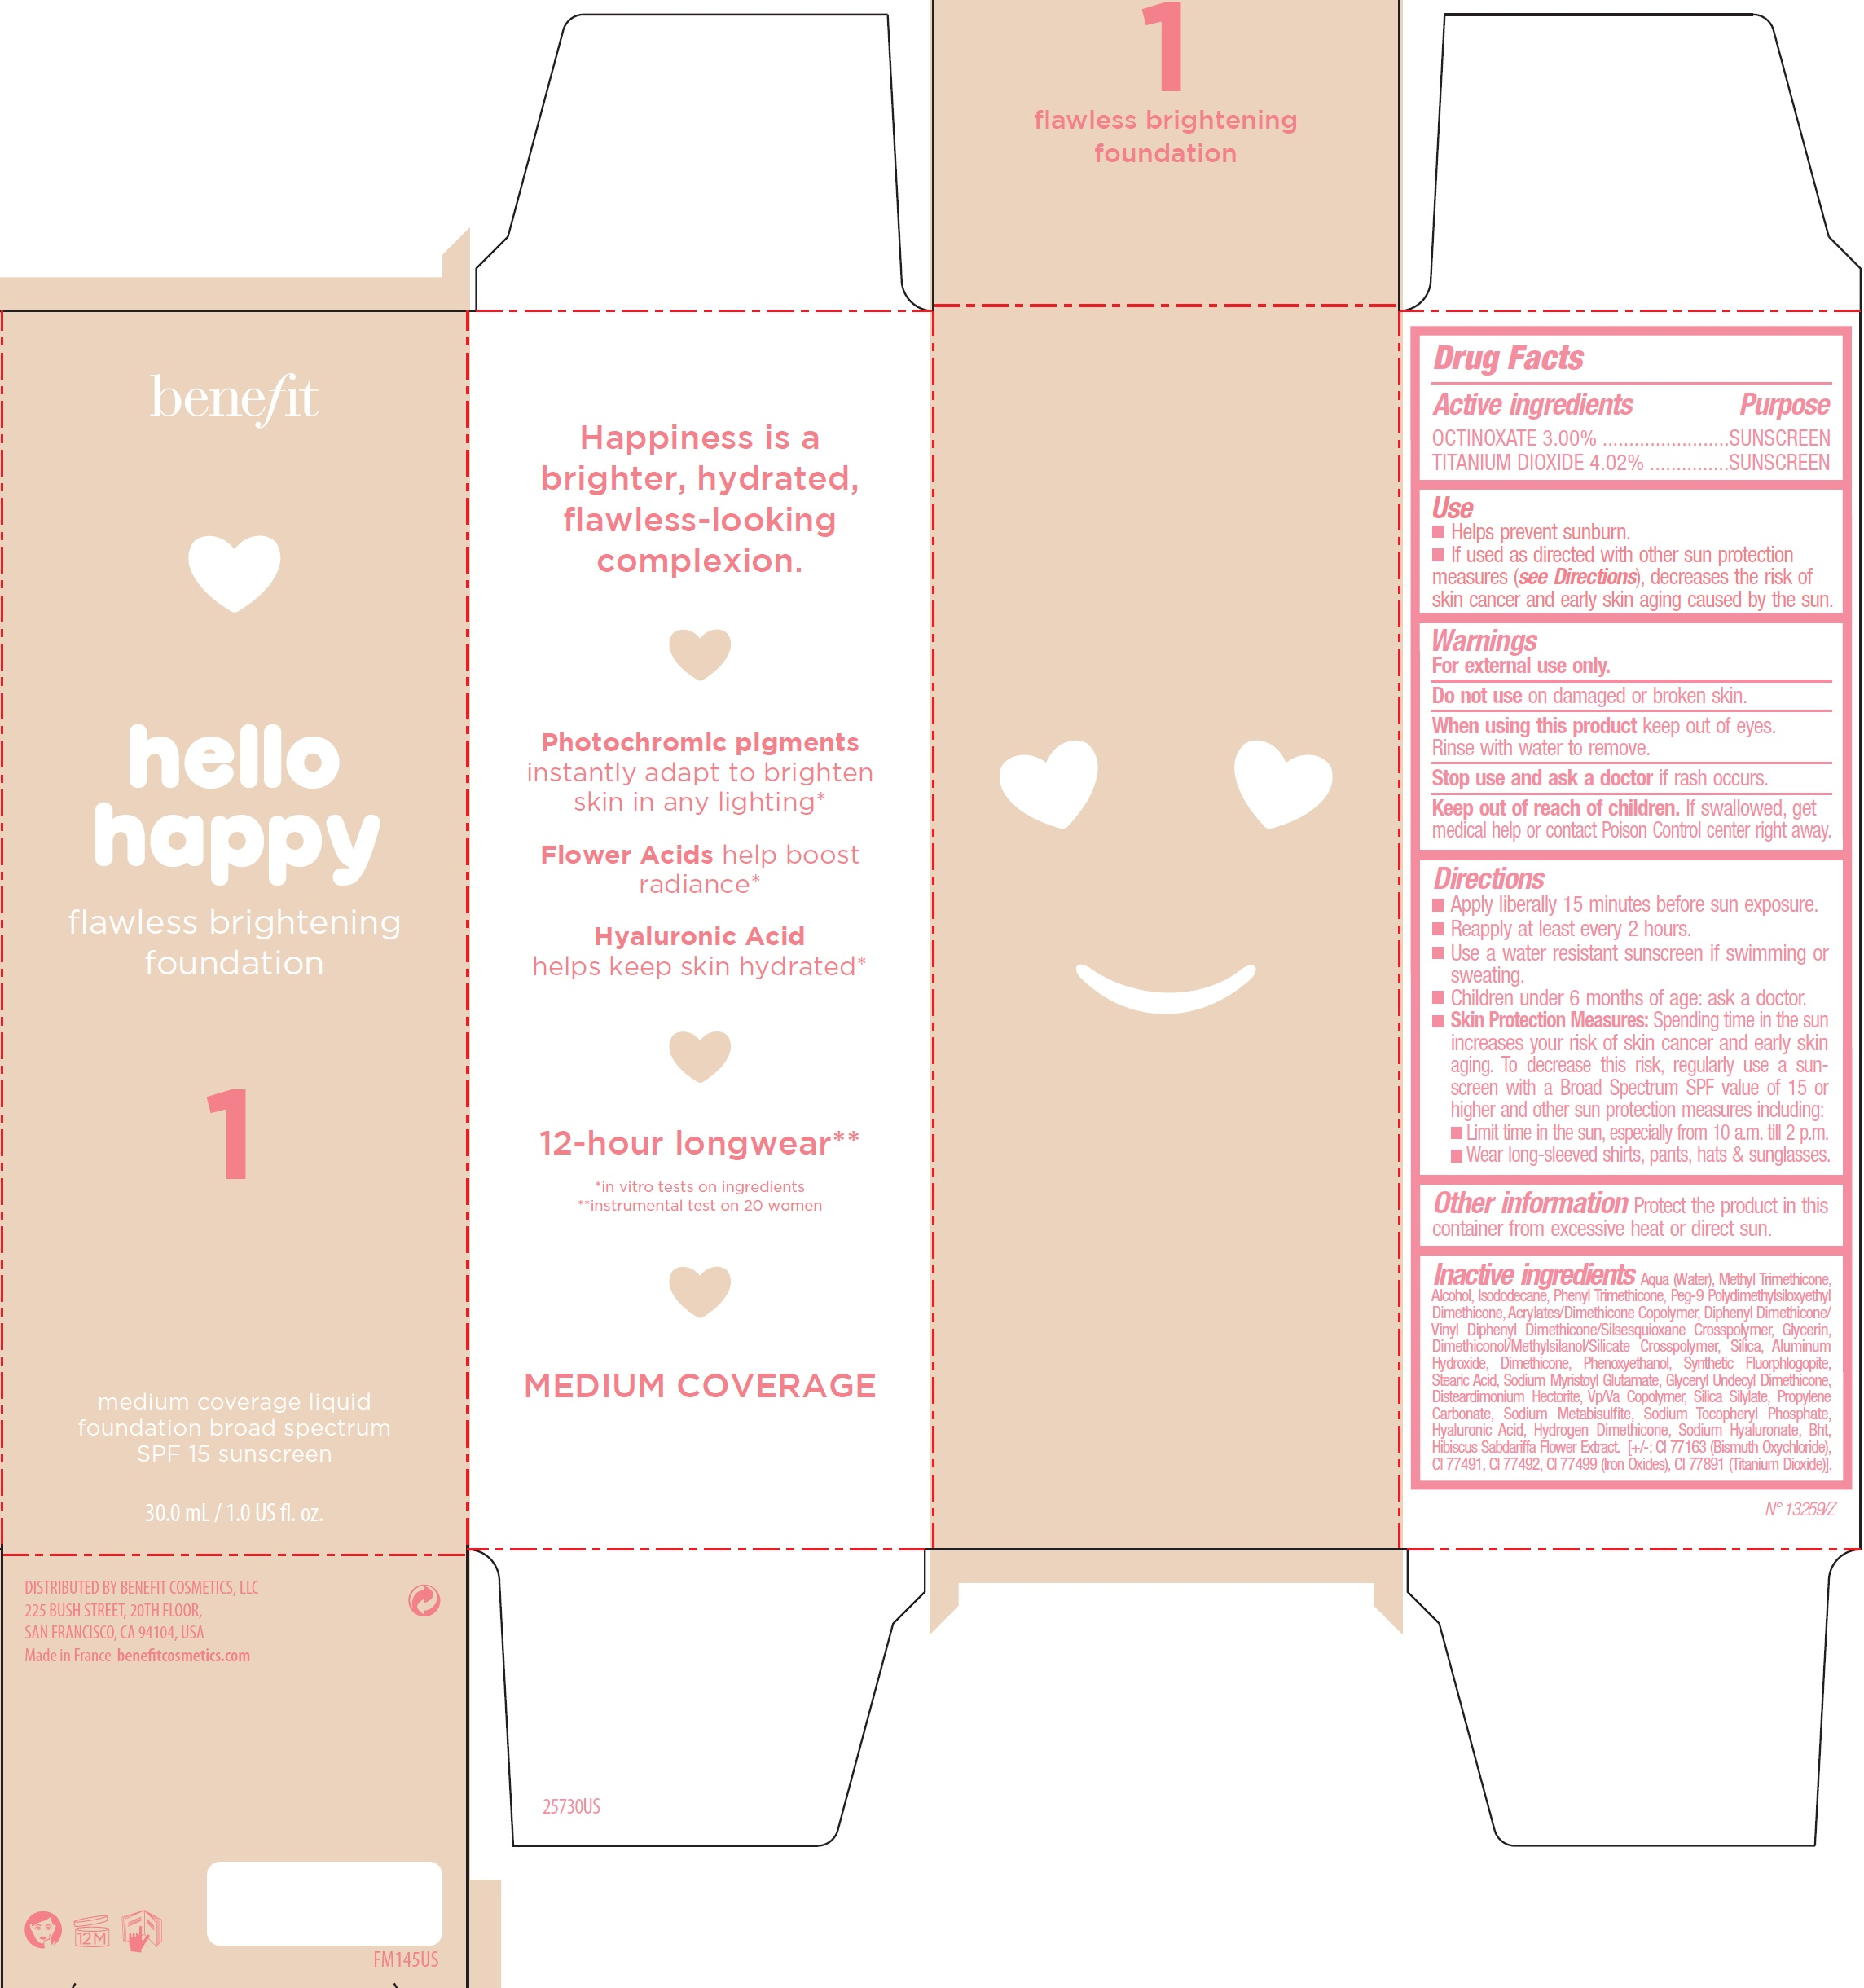 OCTINOXATE, TITANIUM DIOXIDE - Shade 1 (Benefit Hello Happy Flawless Brightening Foundation SPF15)